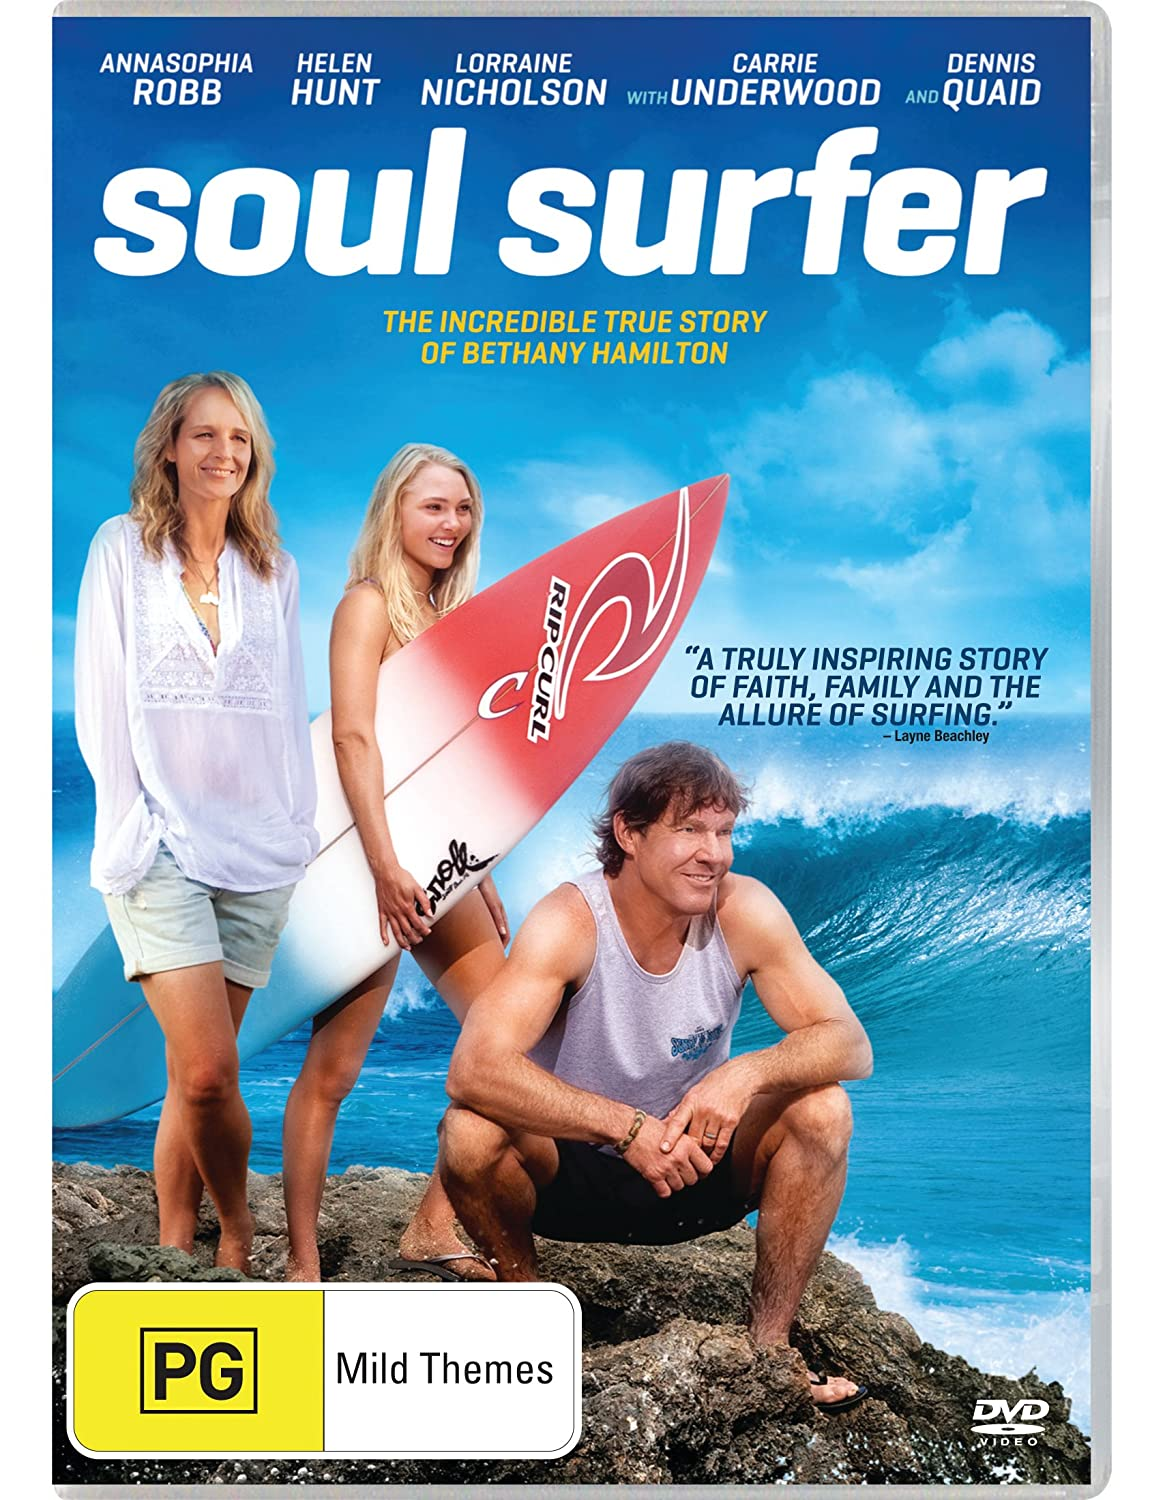 Amazon.com: Soul Surfer [DVD]: Annasophia Robb, Dennis Quaid, Helen Hunt  Lorraine Nicholson, Sean McNamara: Movies & TV